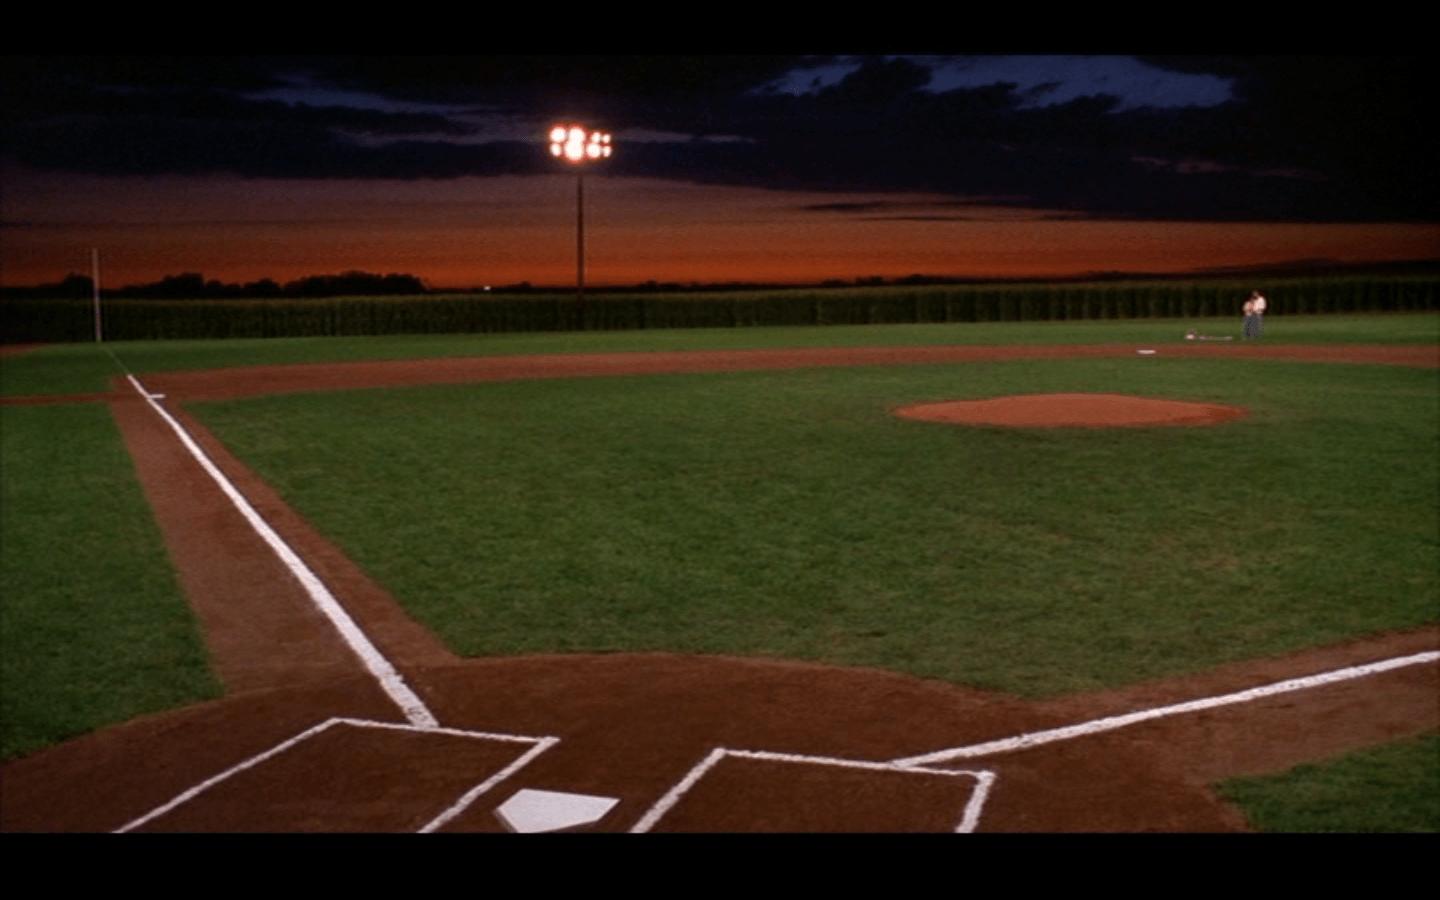 g6 22 Things You Might Not Have Realised About Field Of Dreams